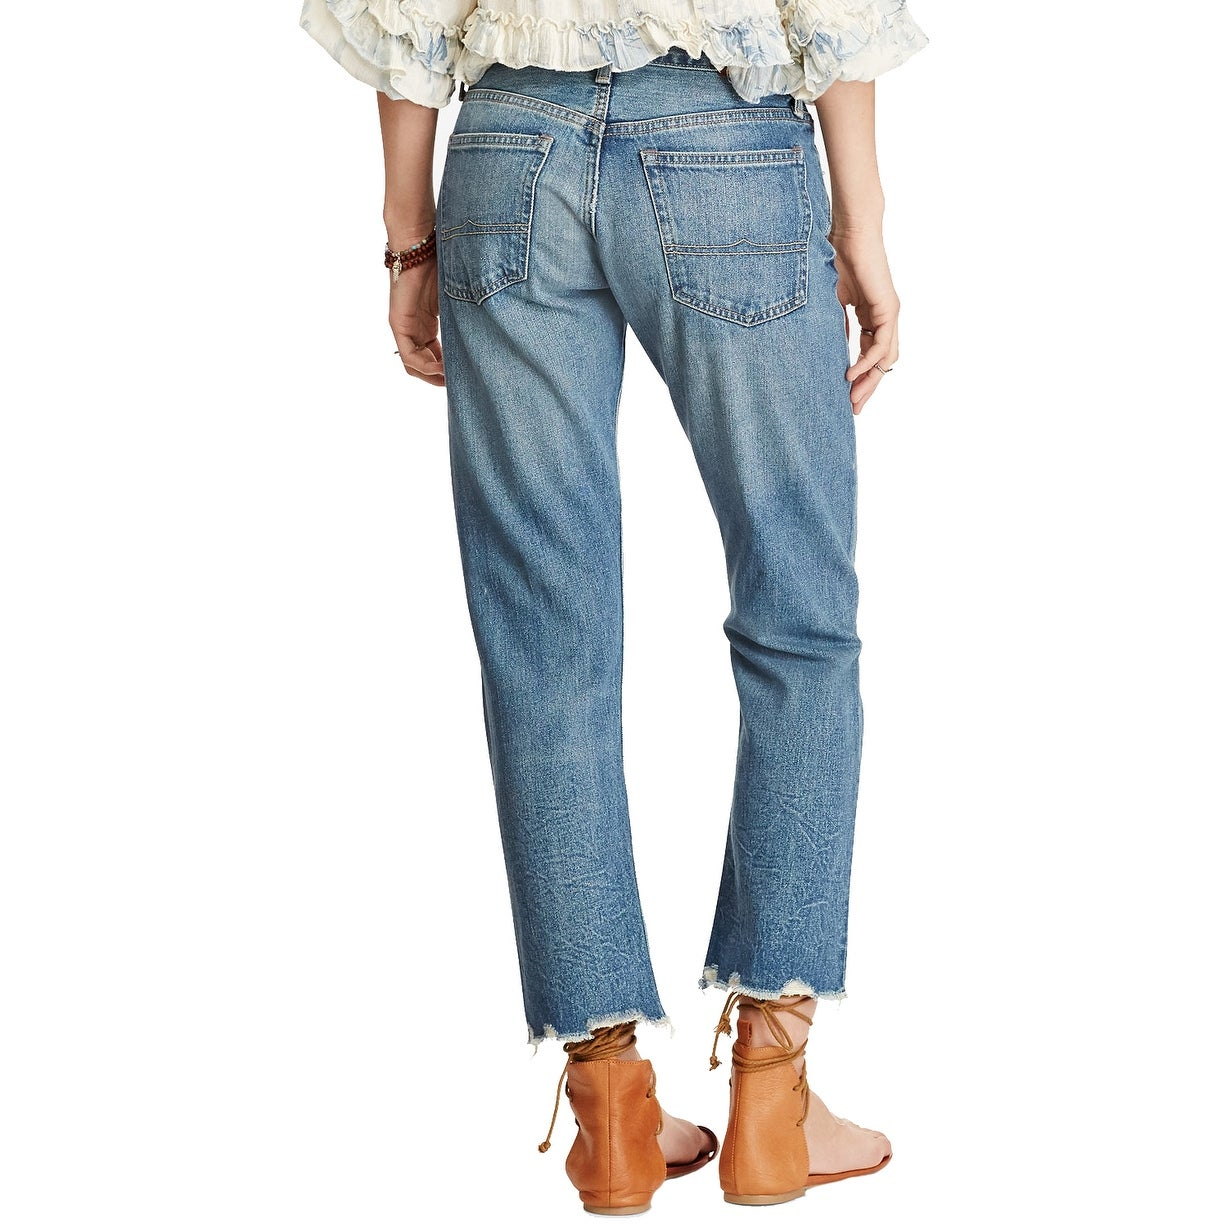 e81af46ea2033 Shop Denim Supply Ralph Lauren High Rise Tapered Jeans Phillips - Free  Shipping On Orders Over $45 - Overstock - 22087818